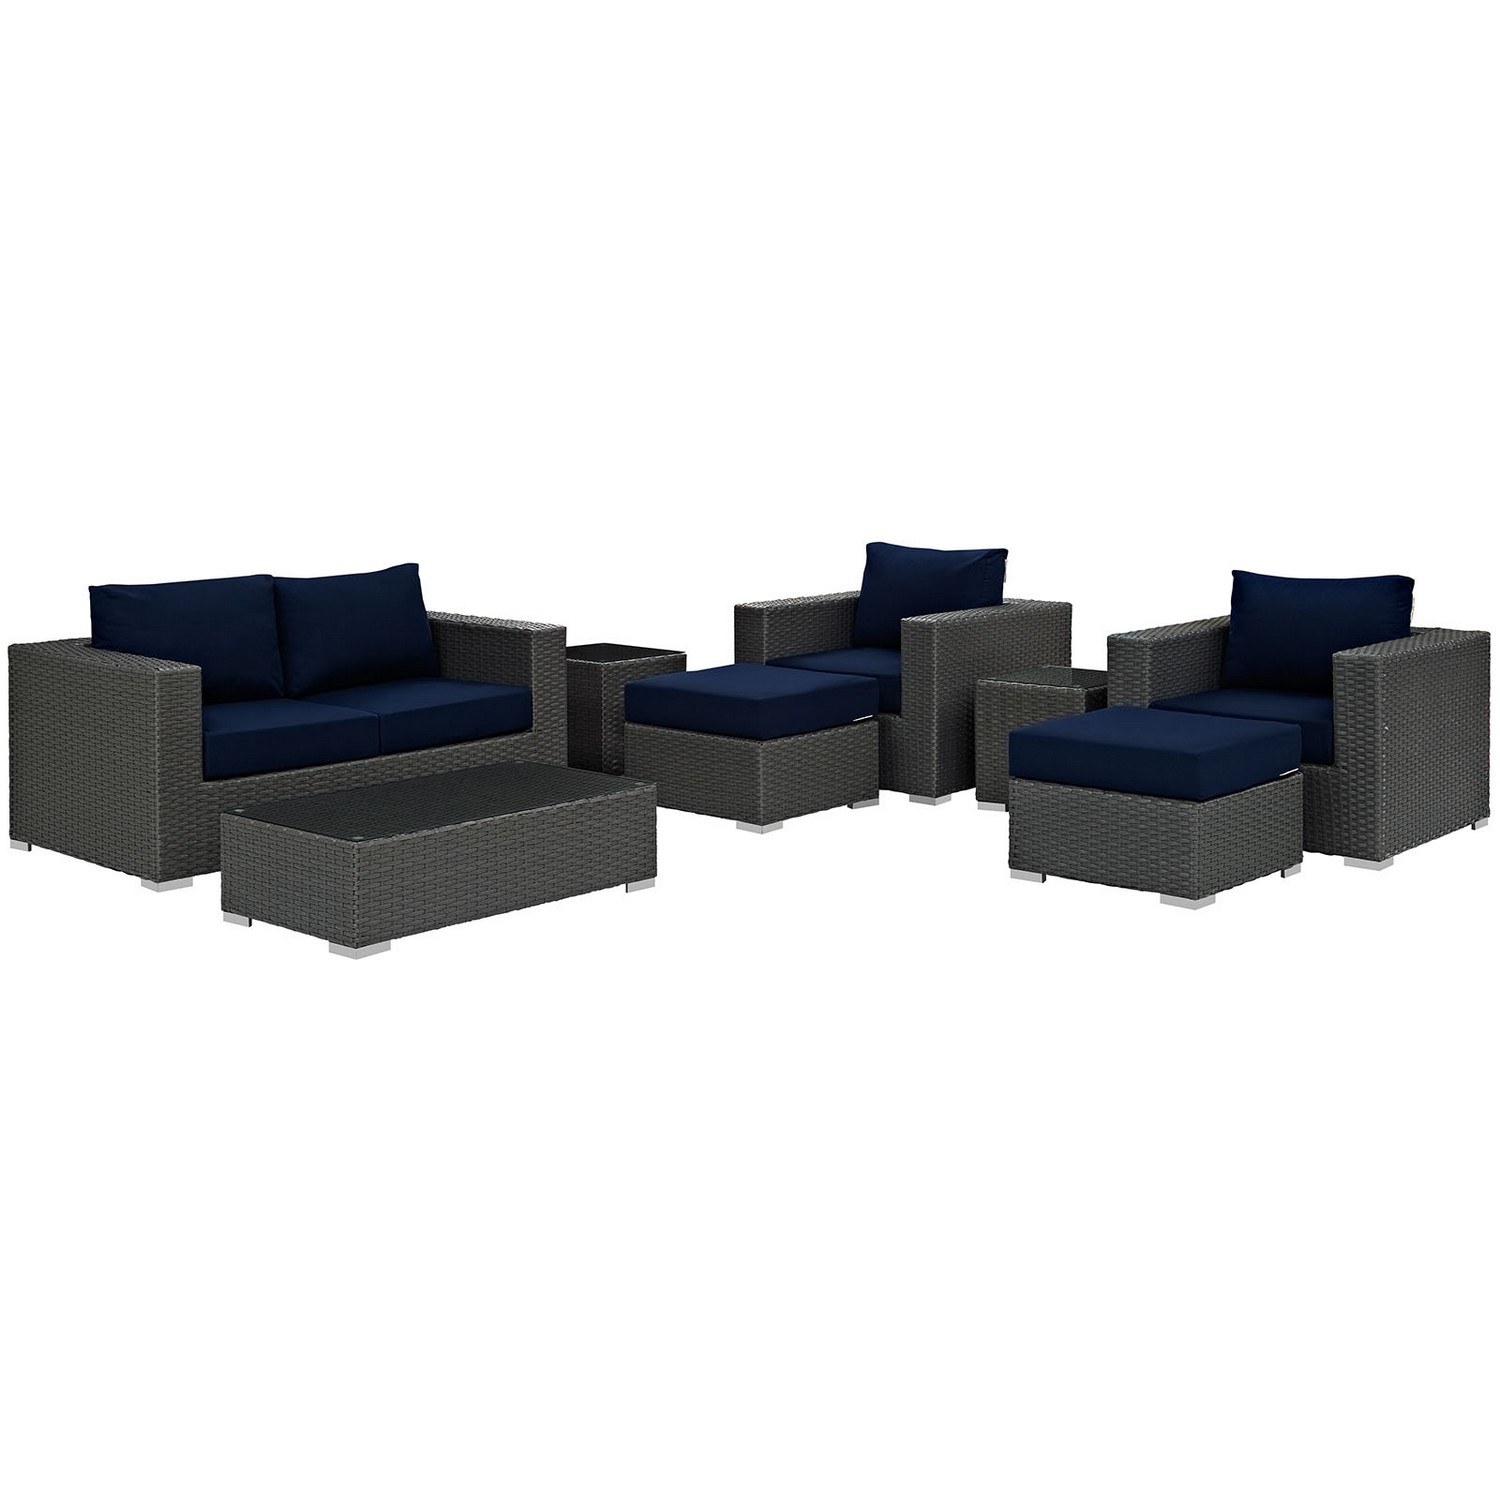 Modway Sojourn 8 Piece Outdoor Patio Sunbrella Sectional Set - Canvas Navy